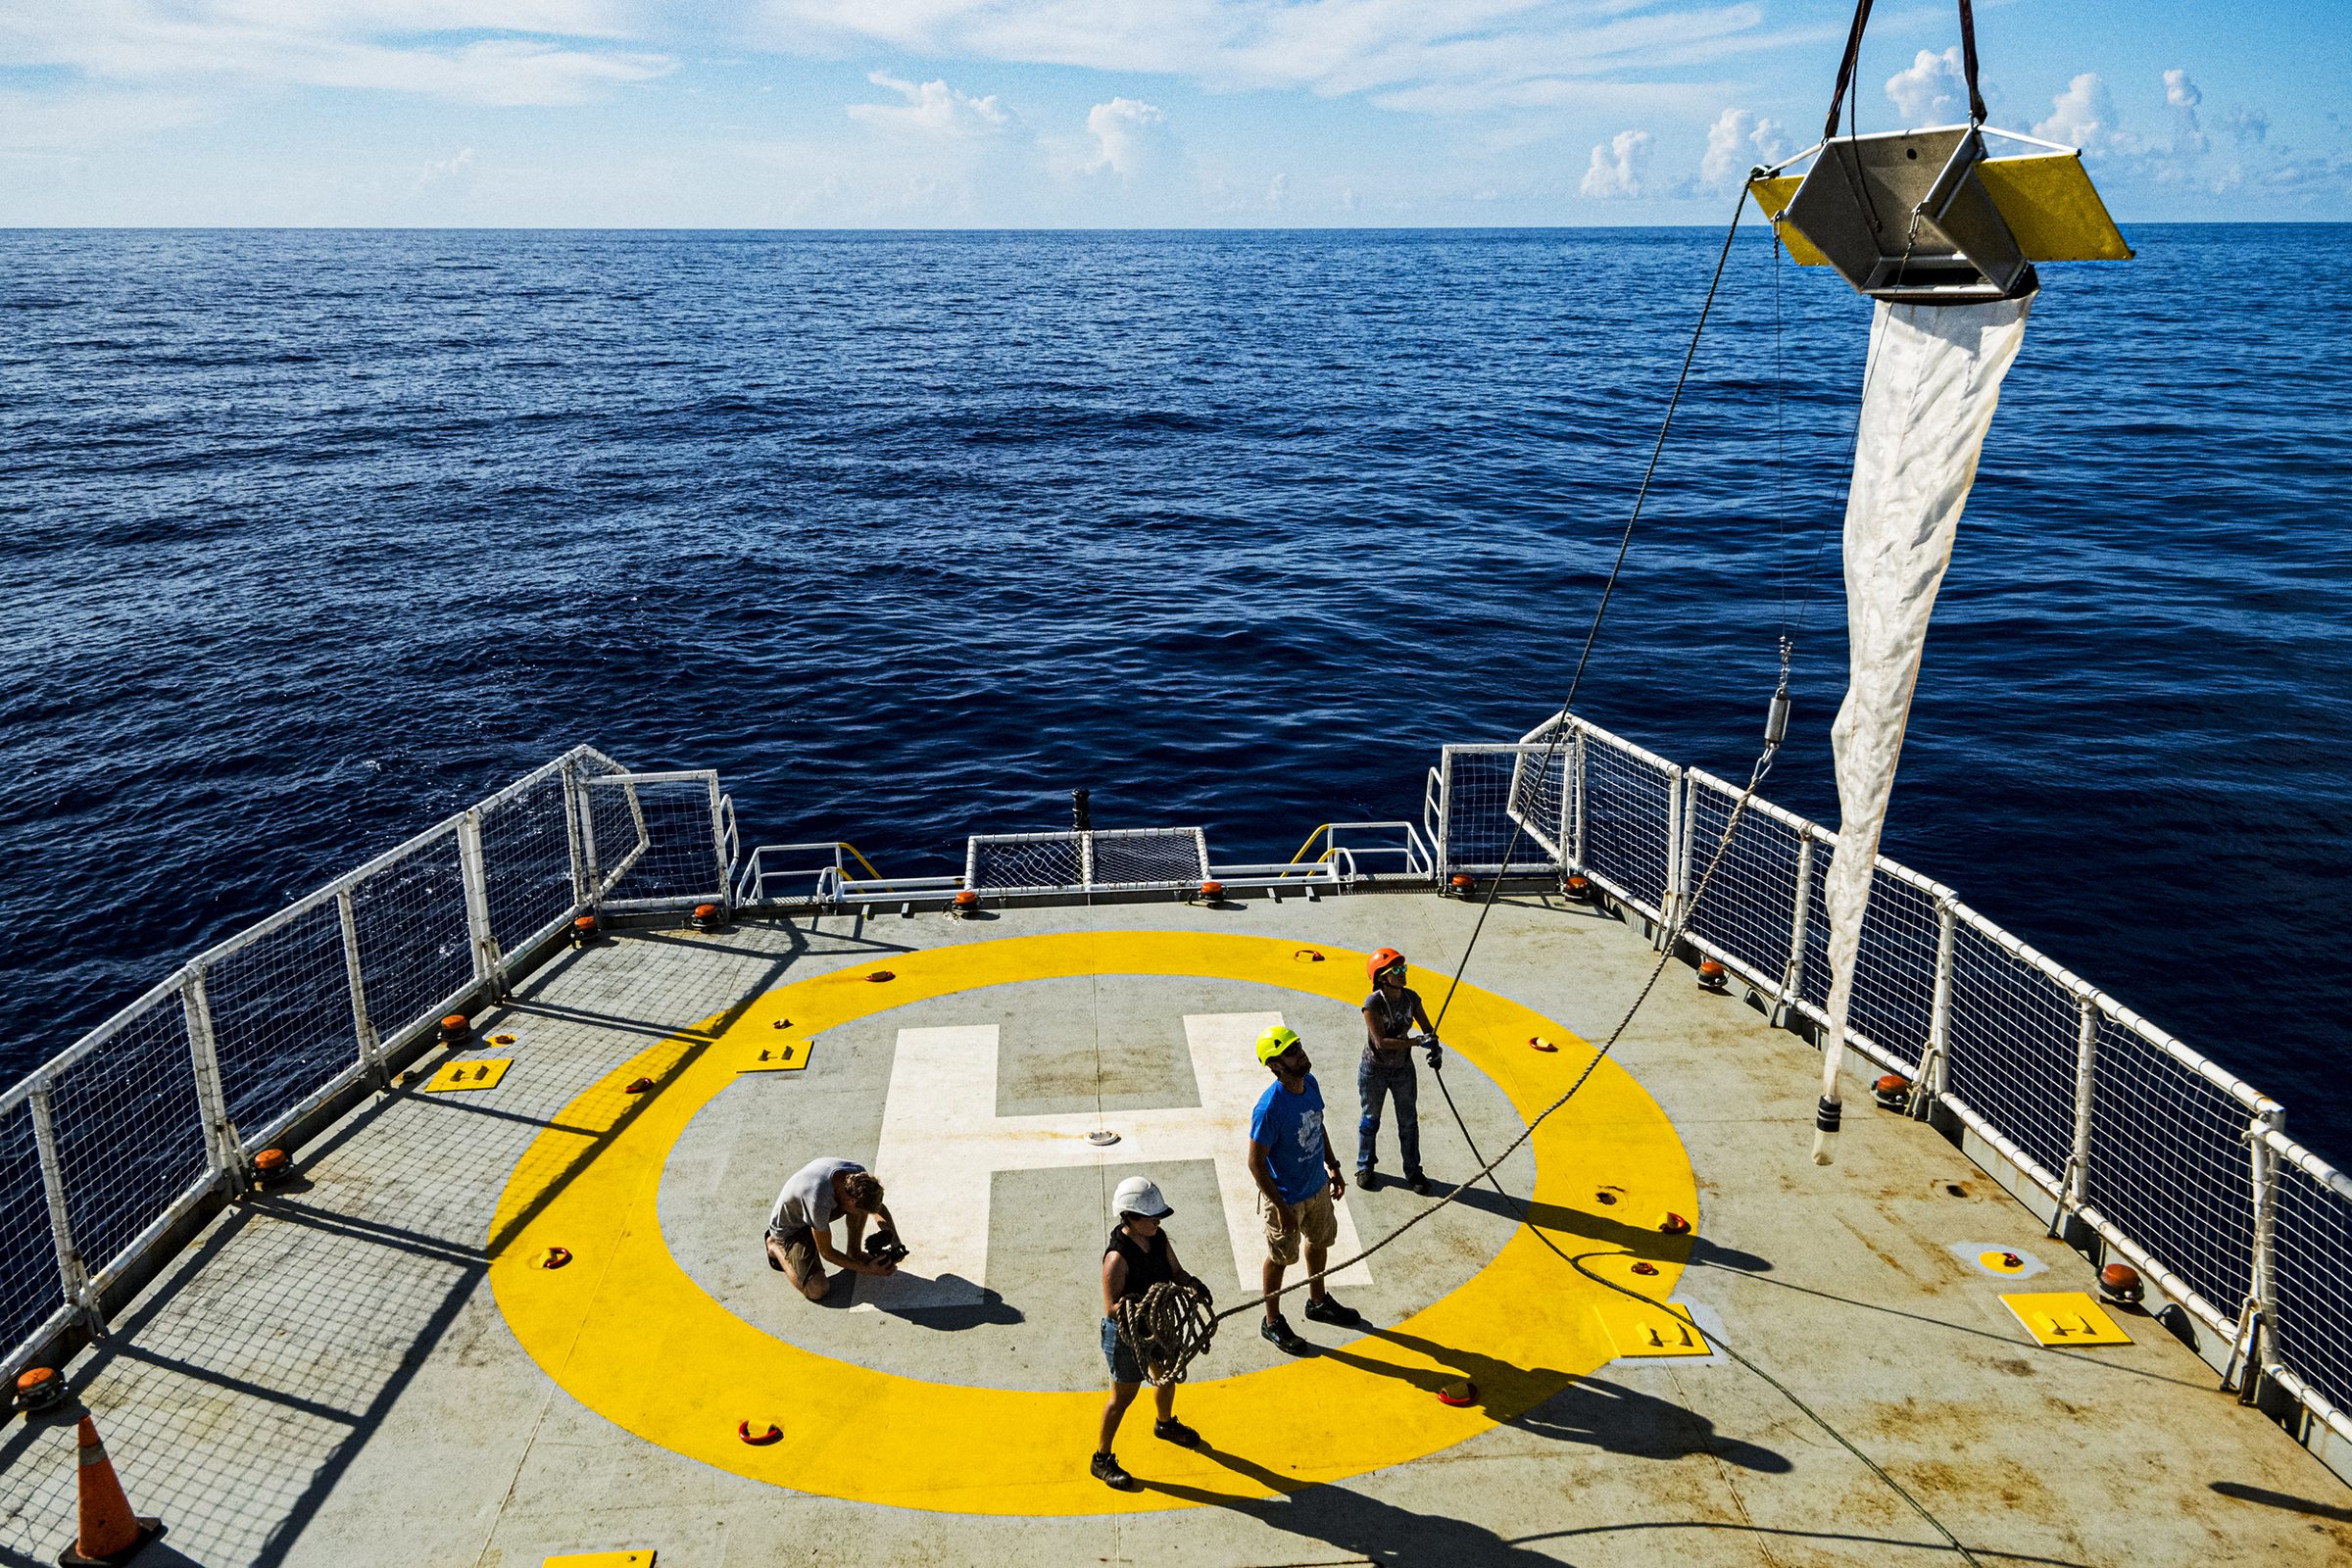 Crew members deploy a research trawl net from the deck of the MY Esperanza during the ship's expedition to the Sargasso Sea, a unique region in the North Atlantic Ocean that is home to a diverse array of marine life.